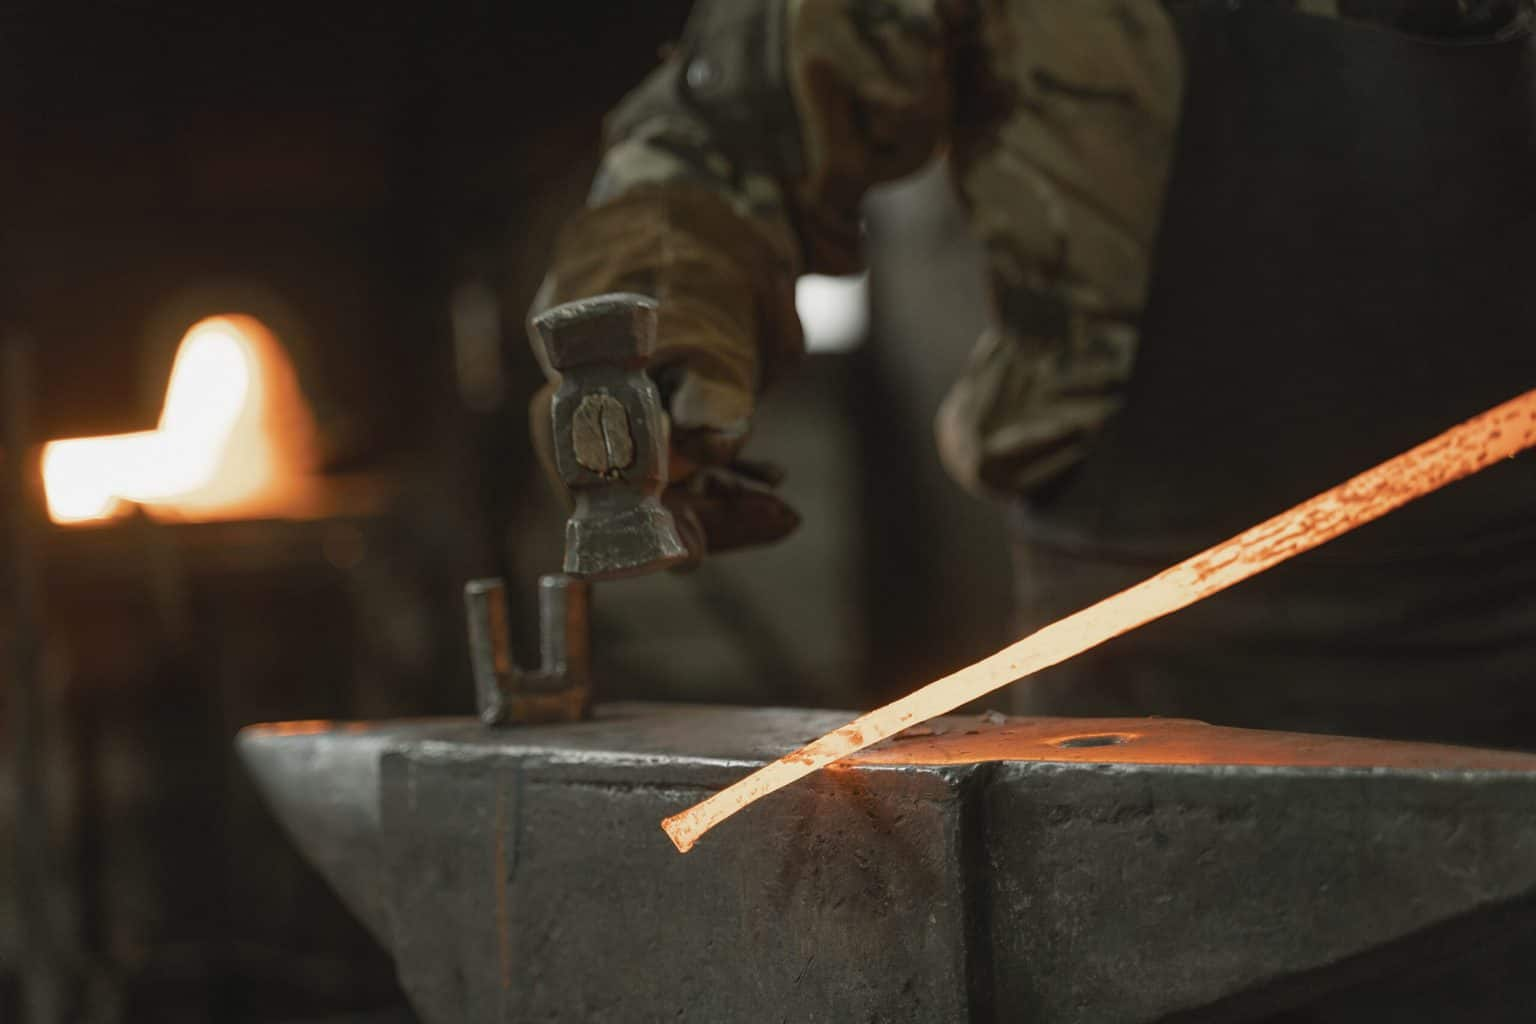 Hammering a forged steel